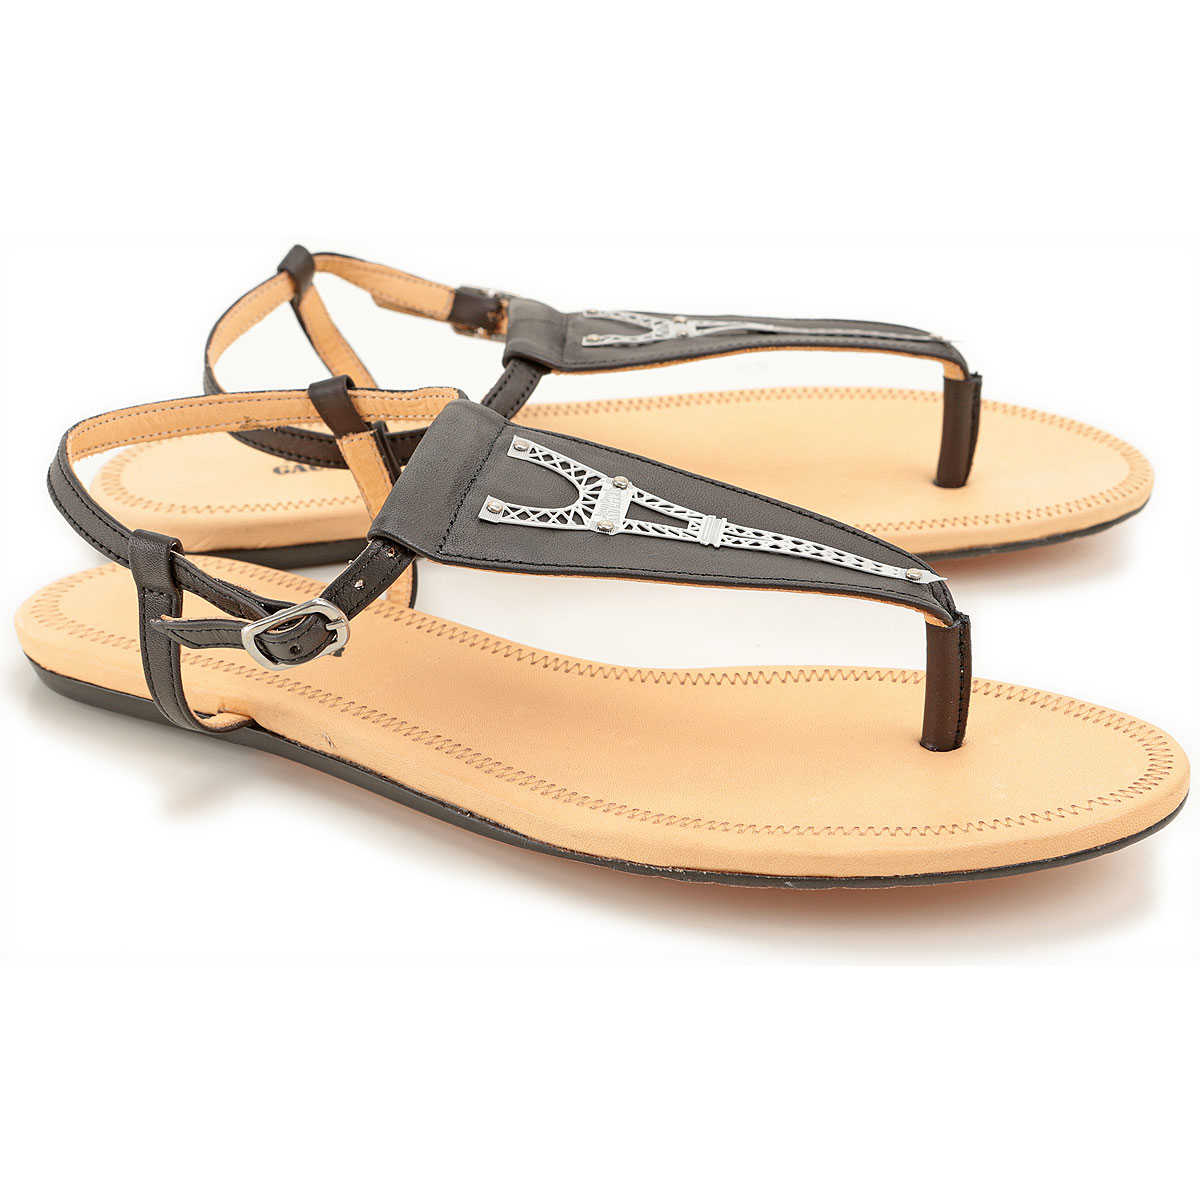 J.P. Gaultier Womens Shoes On Sale